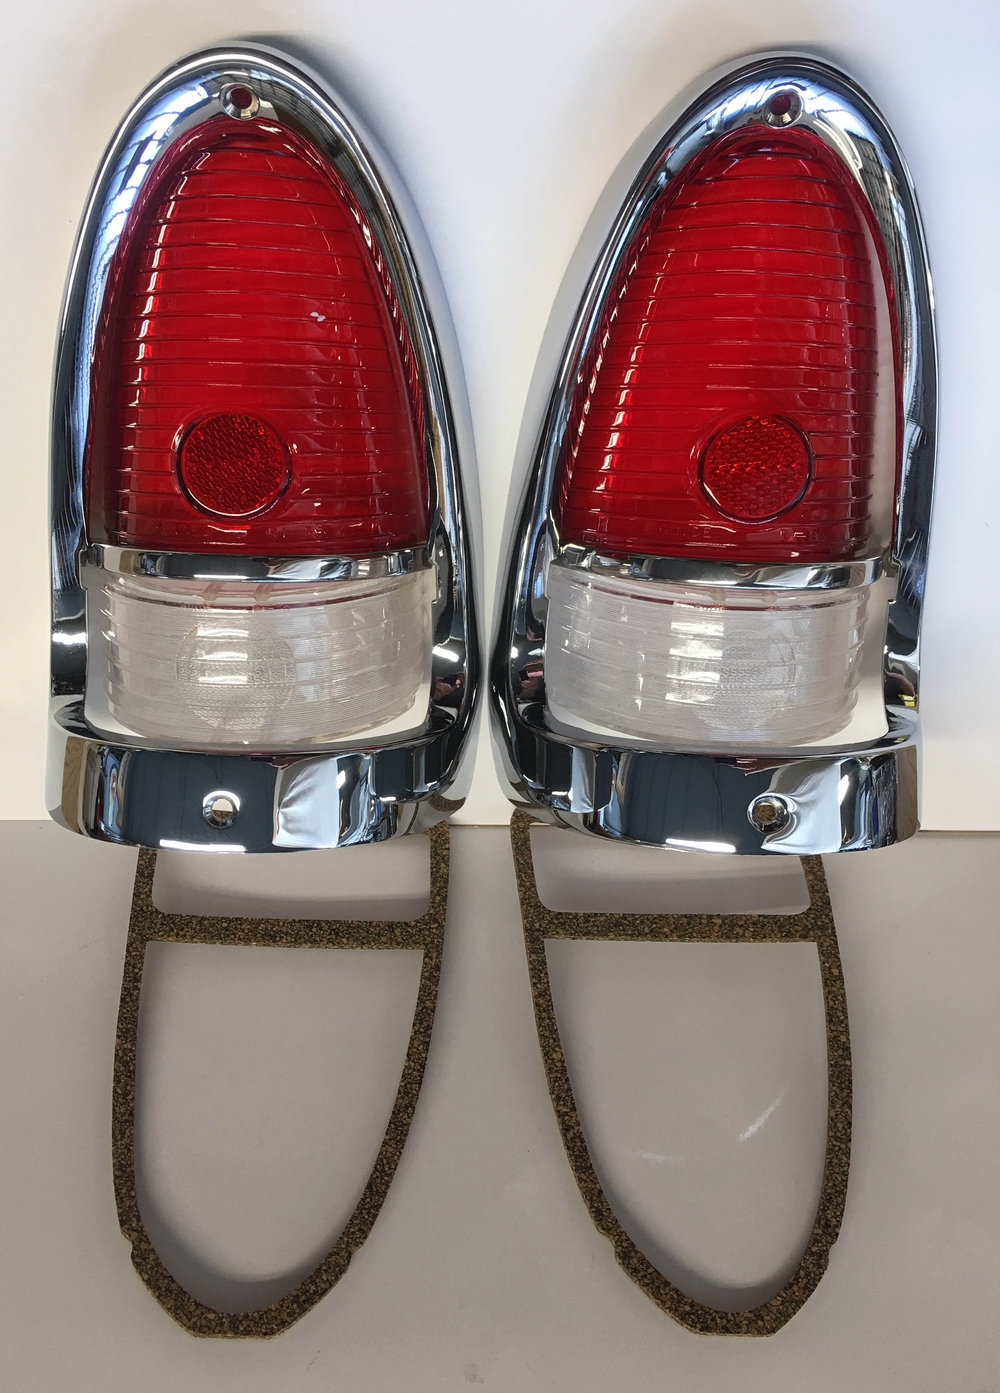 1955 Chevrolet Red LED Tail light Kit - 10 Pieces